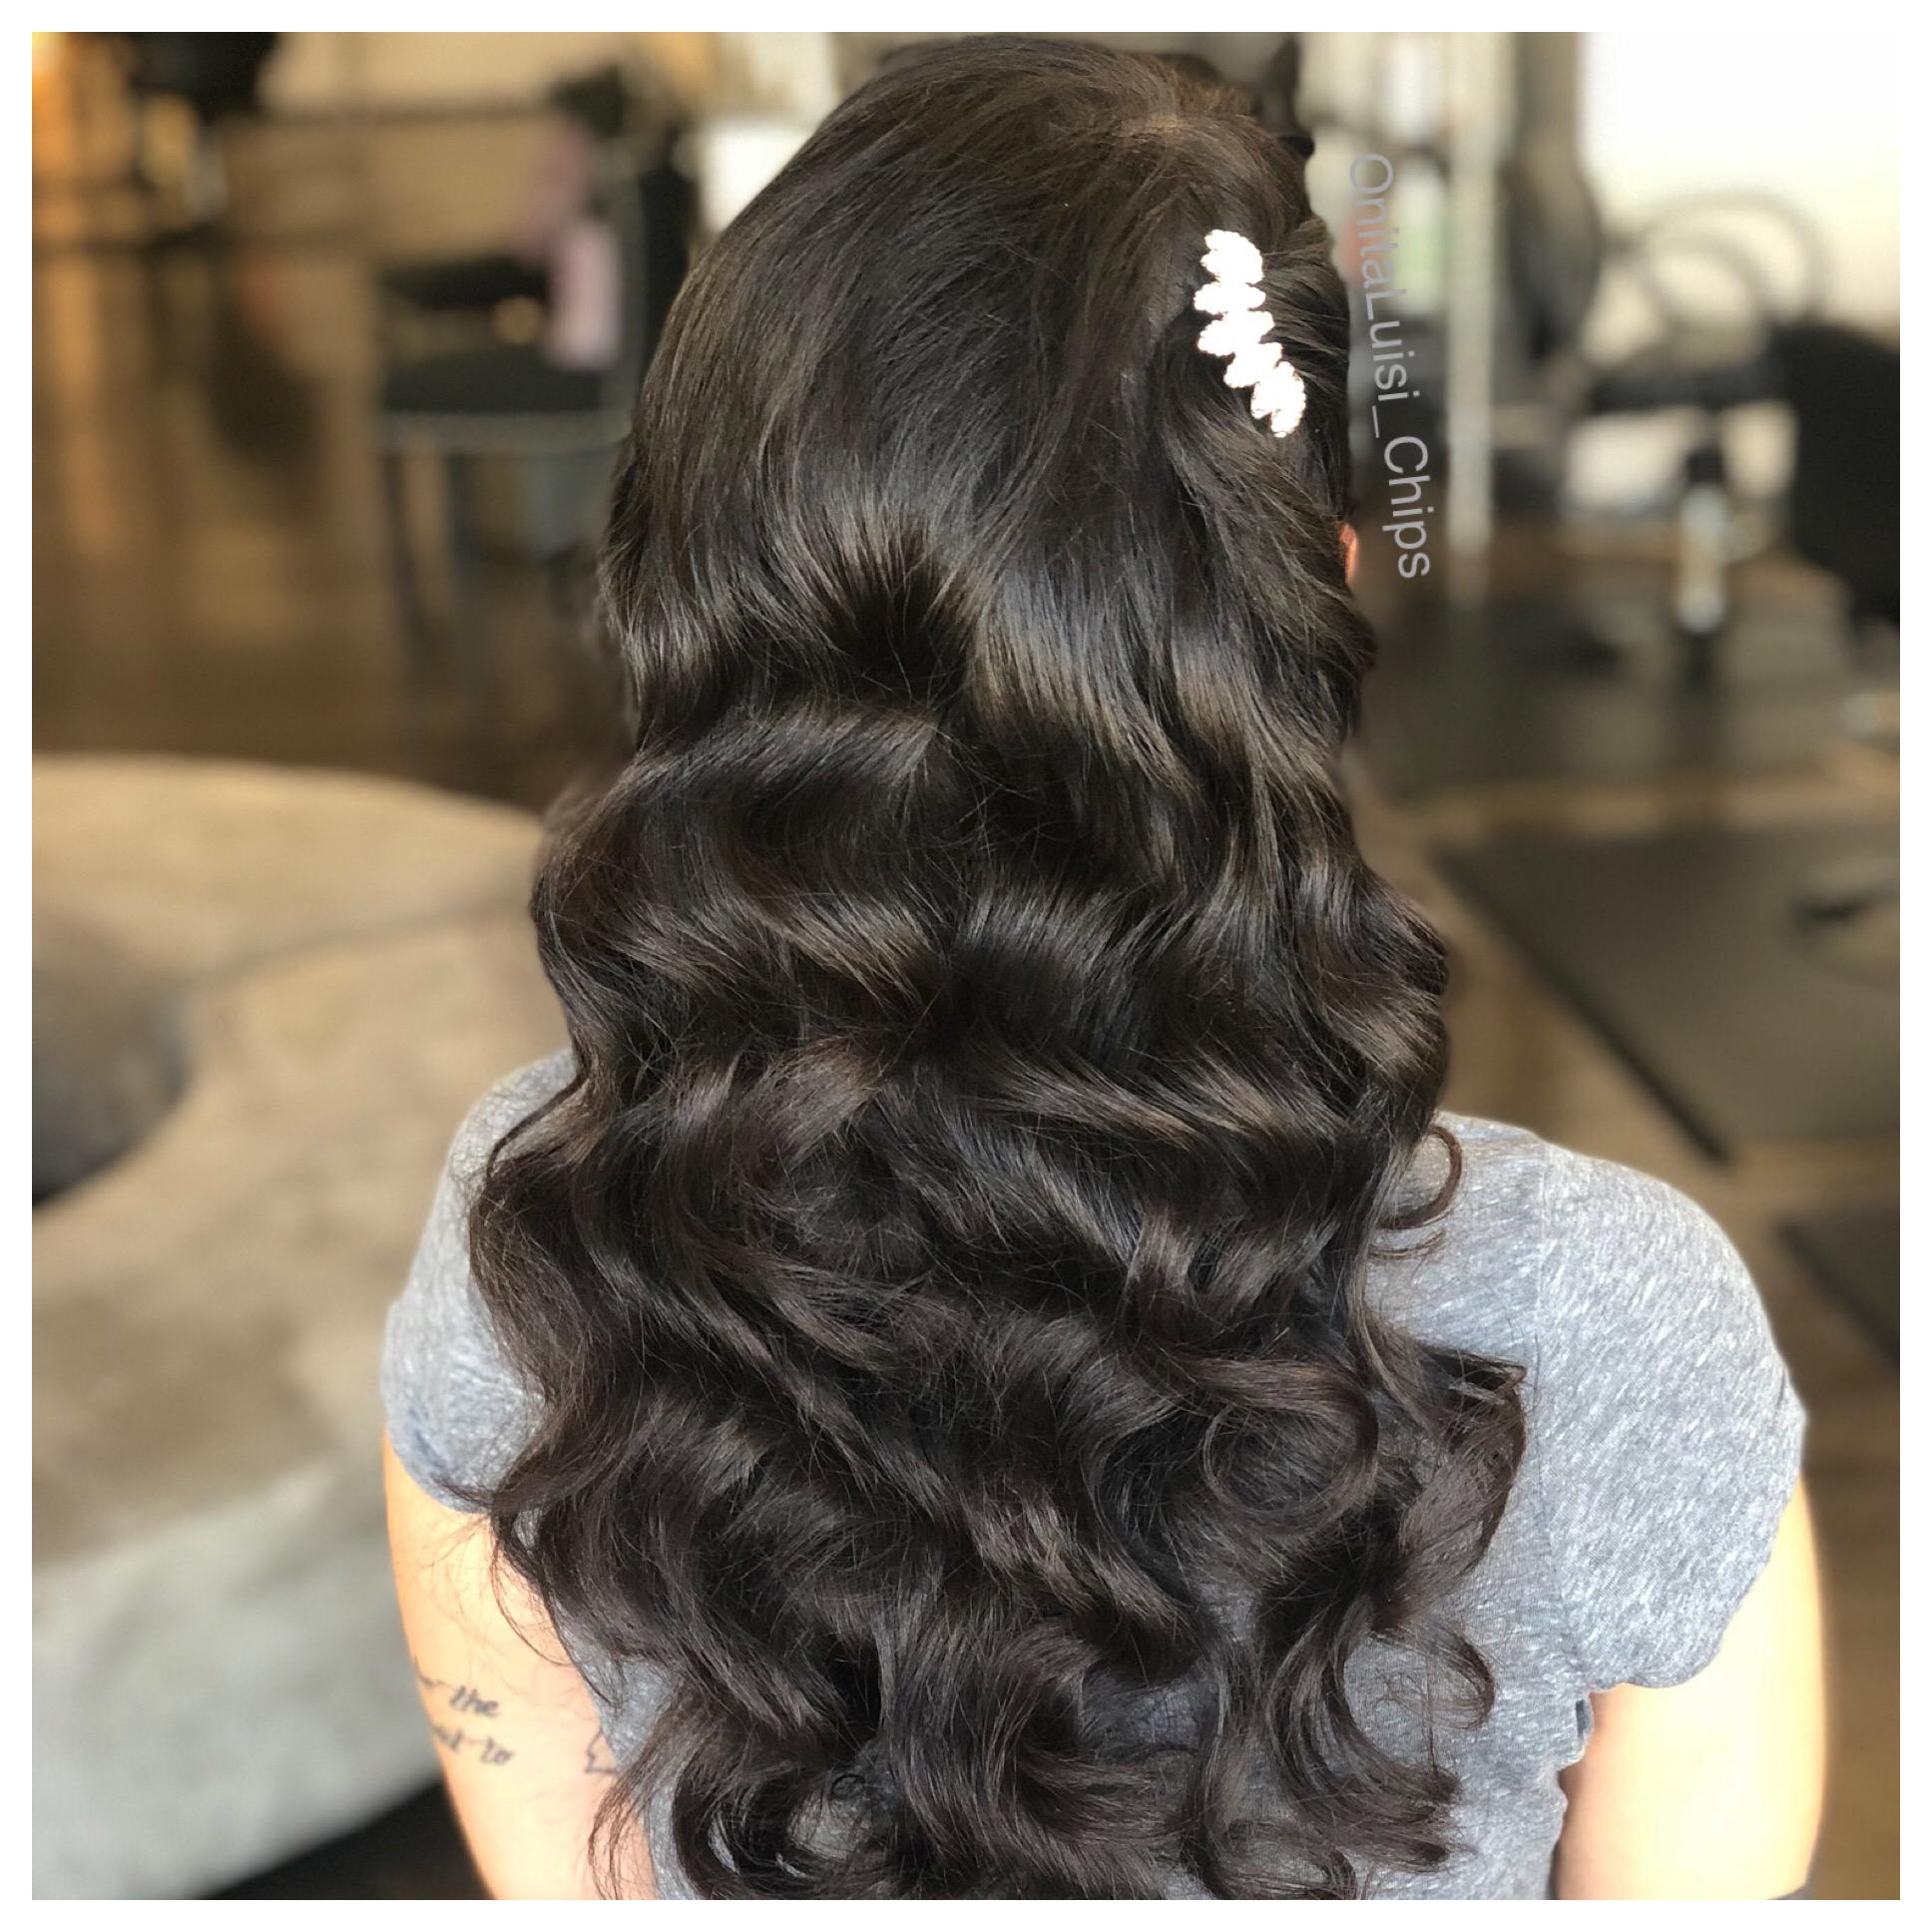 Ready for Prom, with beautiful waves